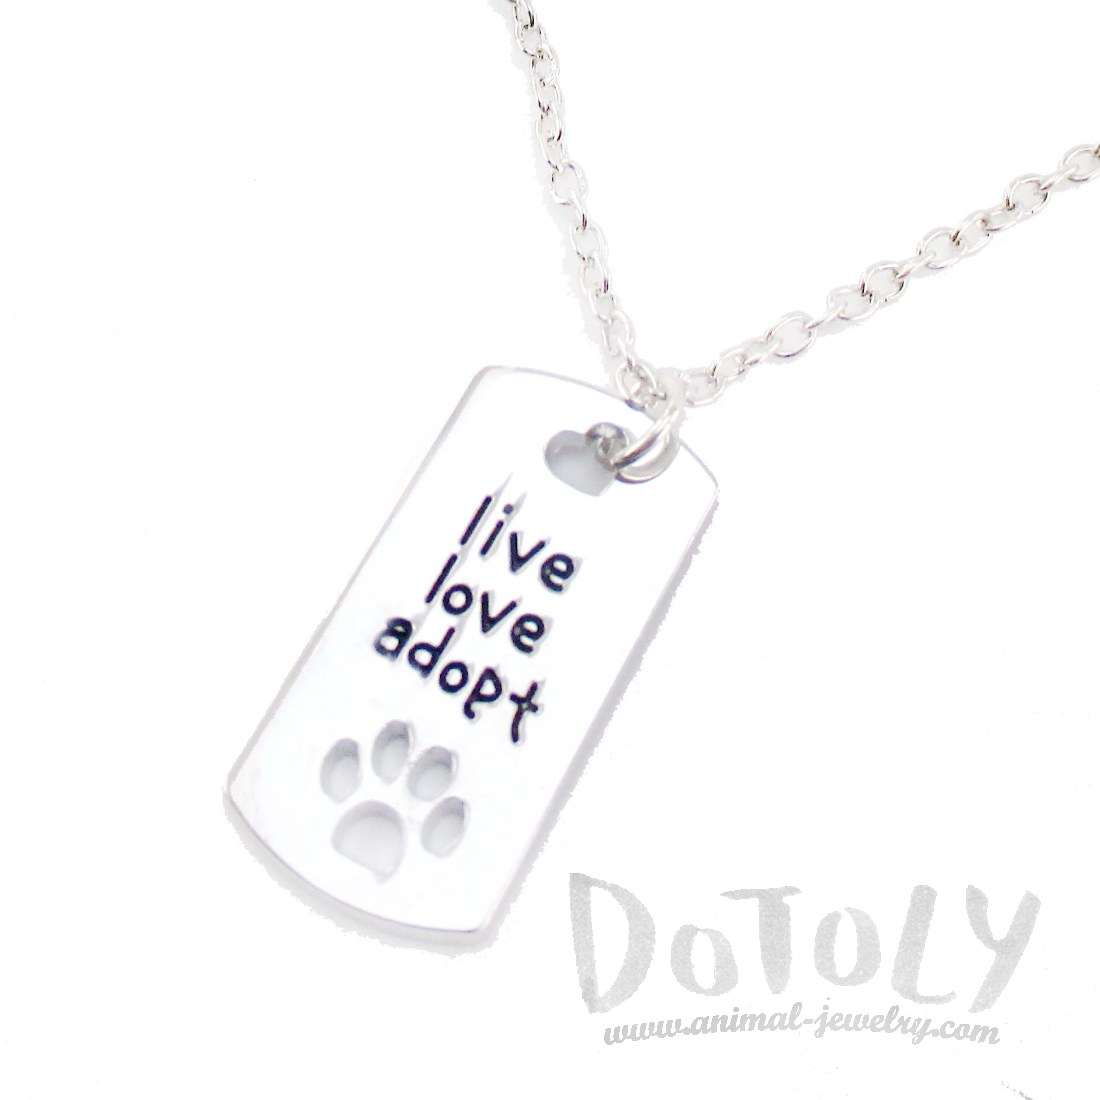 Dog Tag Shaped Pendant Necklace With Live Love Adopt Etched On Front Dotoly Animal Jewelry